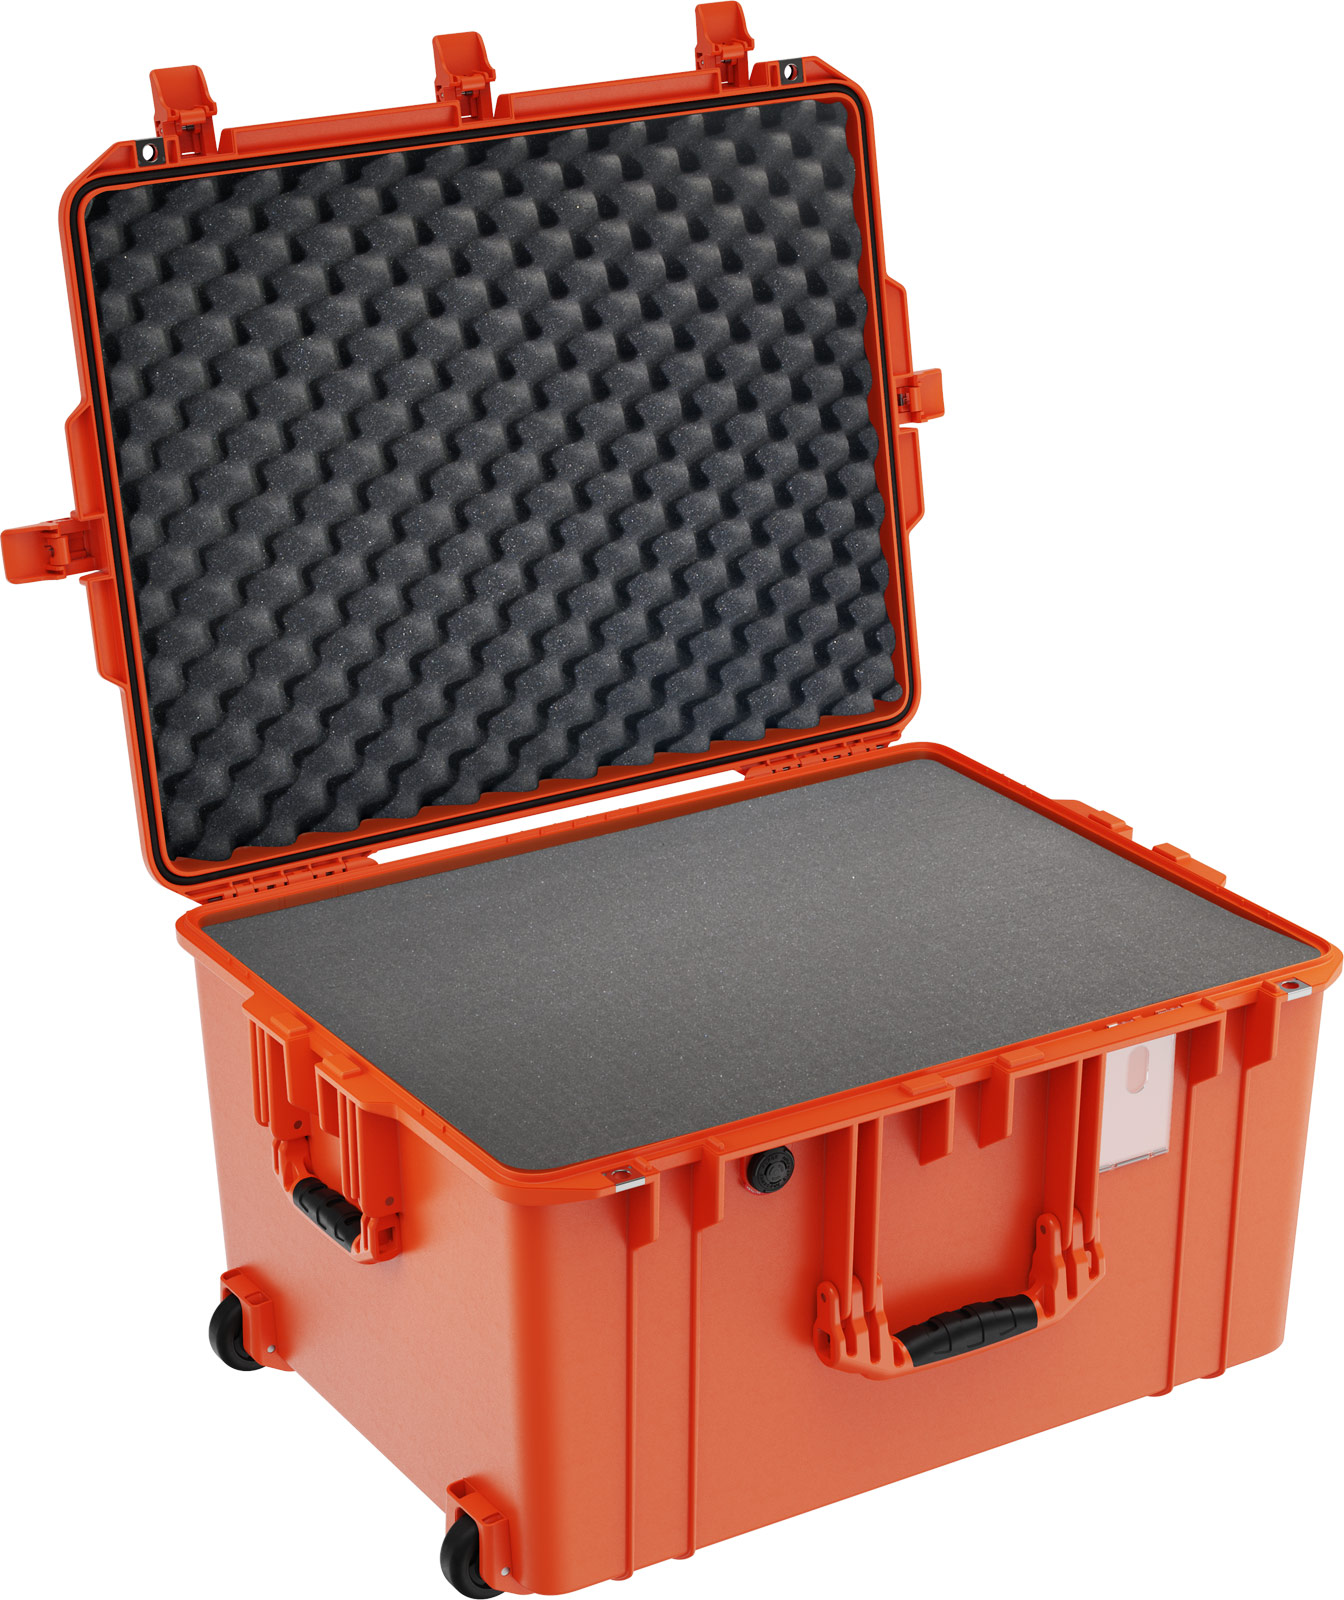 pelican 1637 foam airtight tough orange case